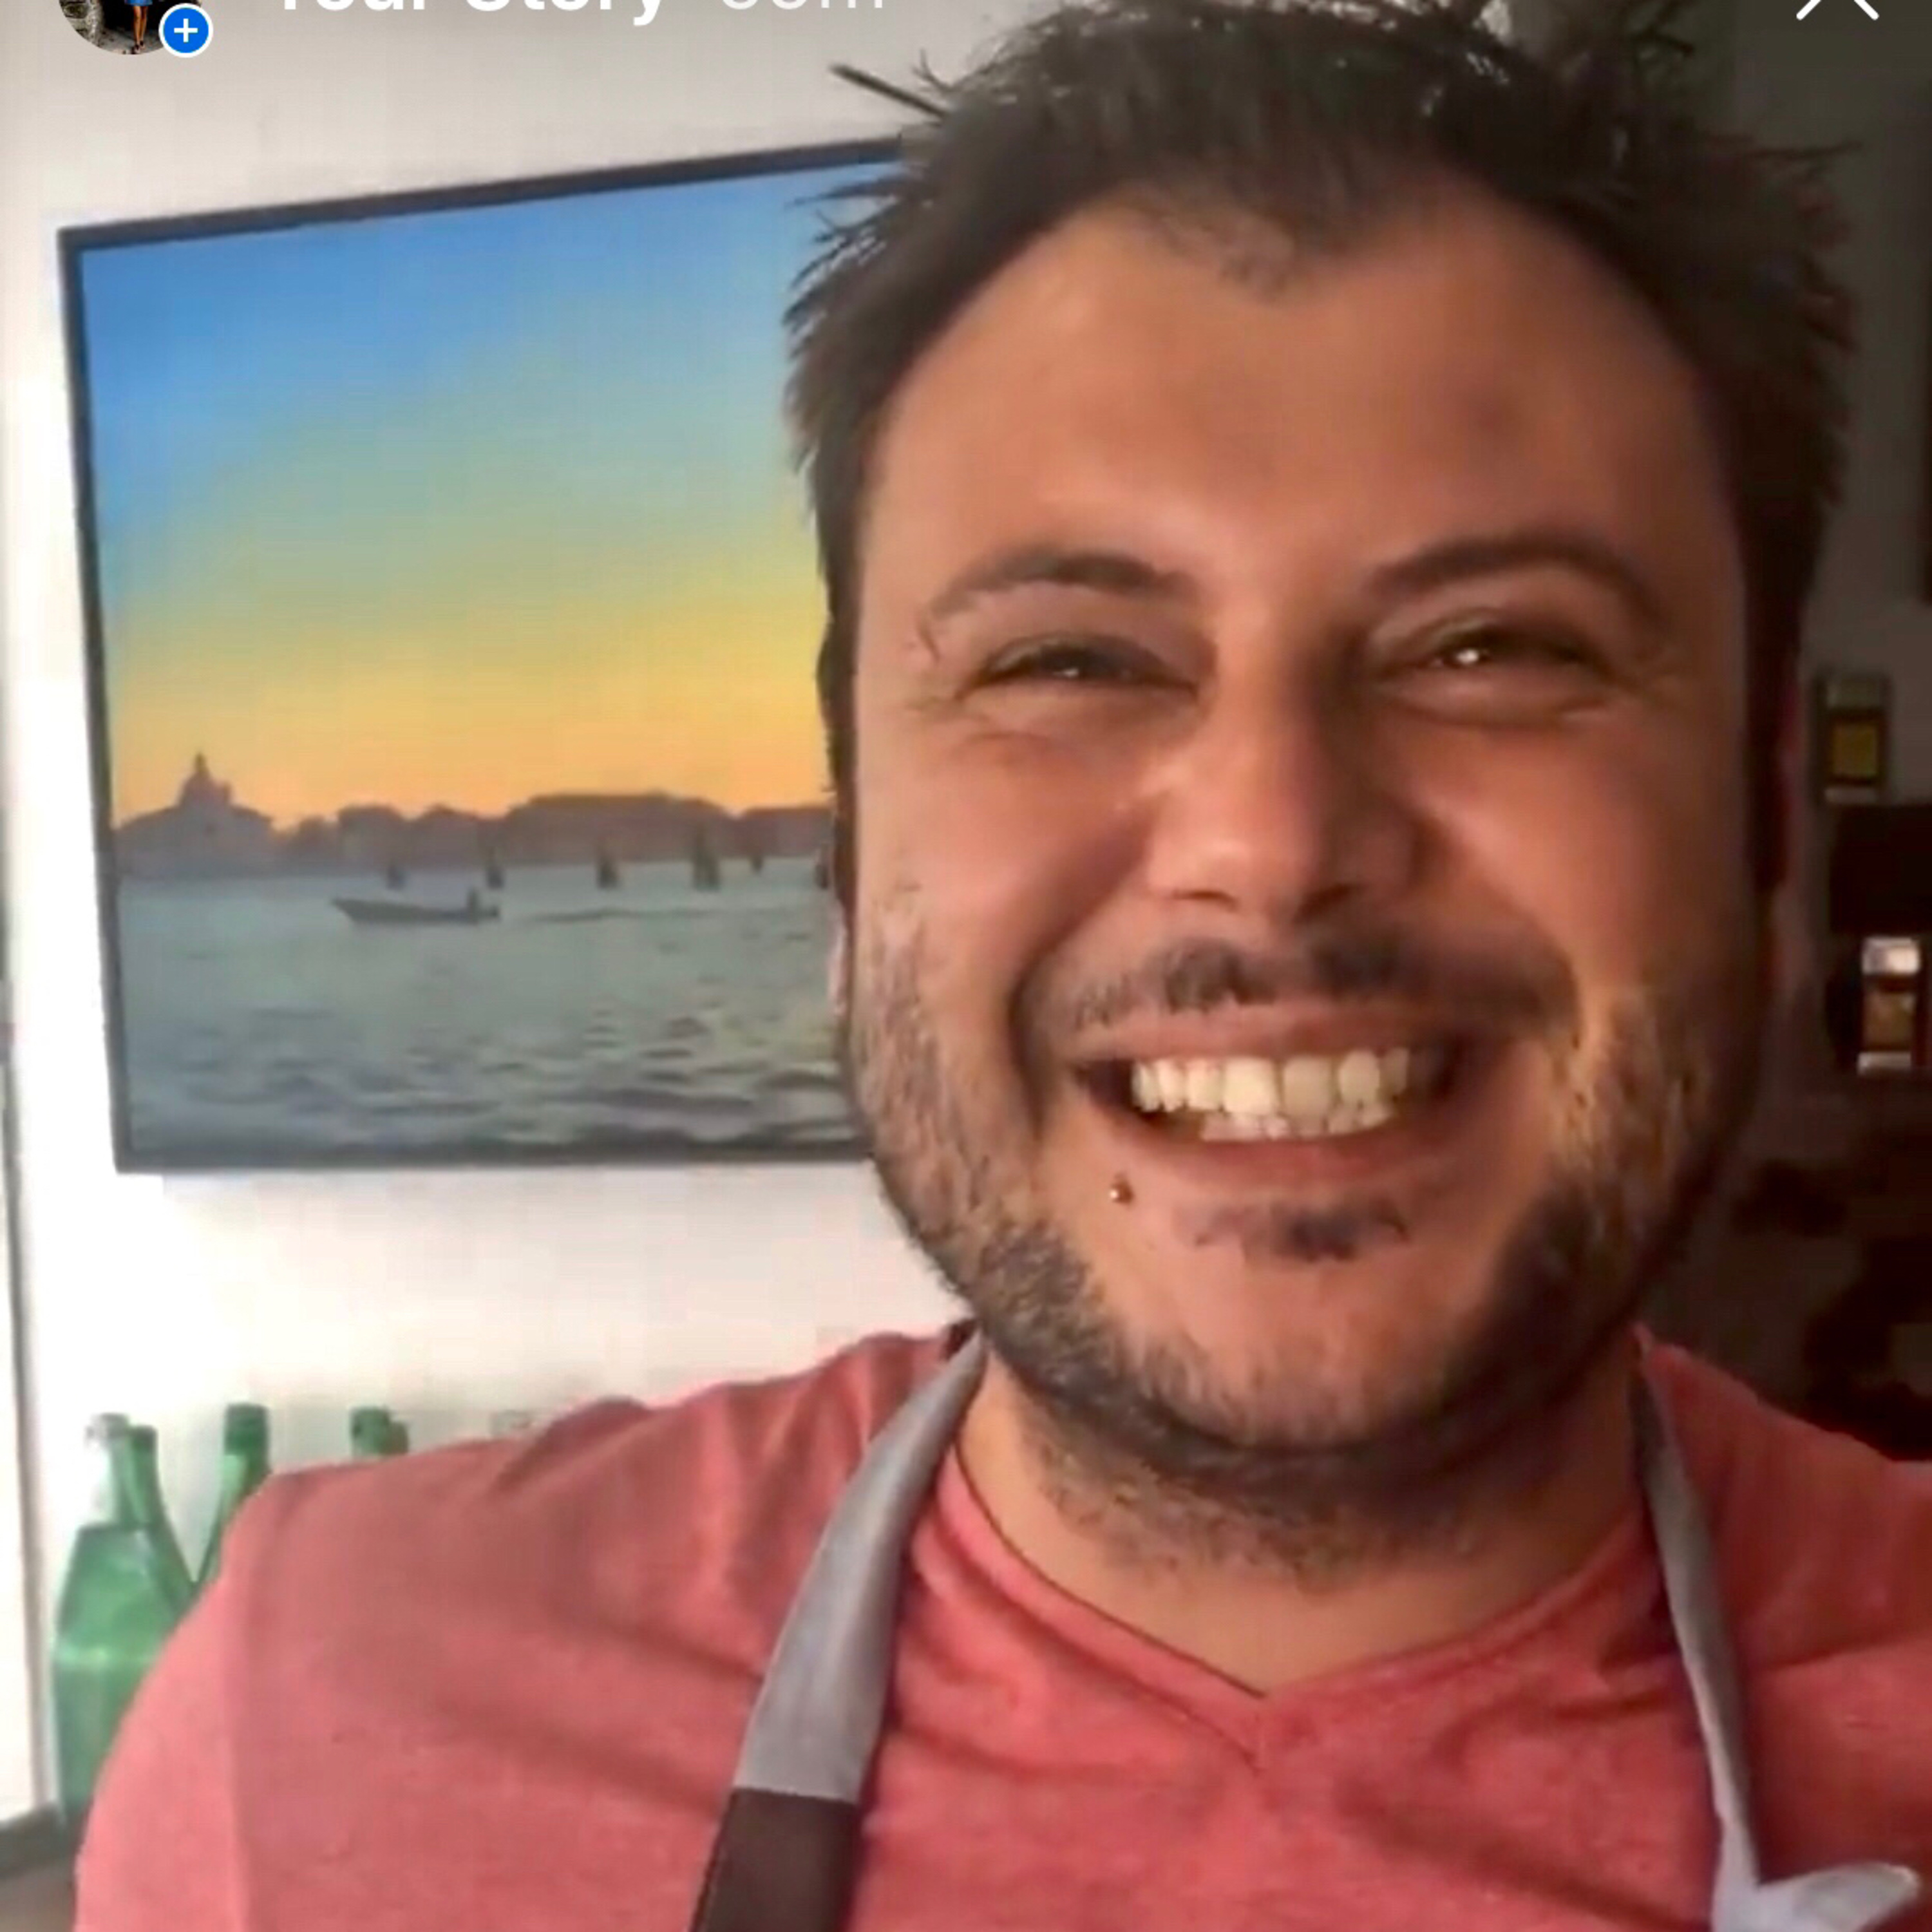 EP 18- Luca Bassetto grew up in Venice, authentic cook & honest hospitality, we chat Bacaro NSW